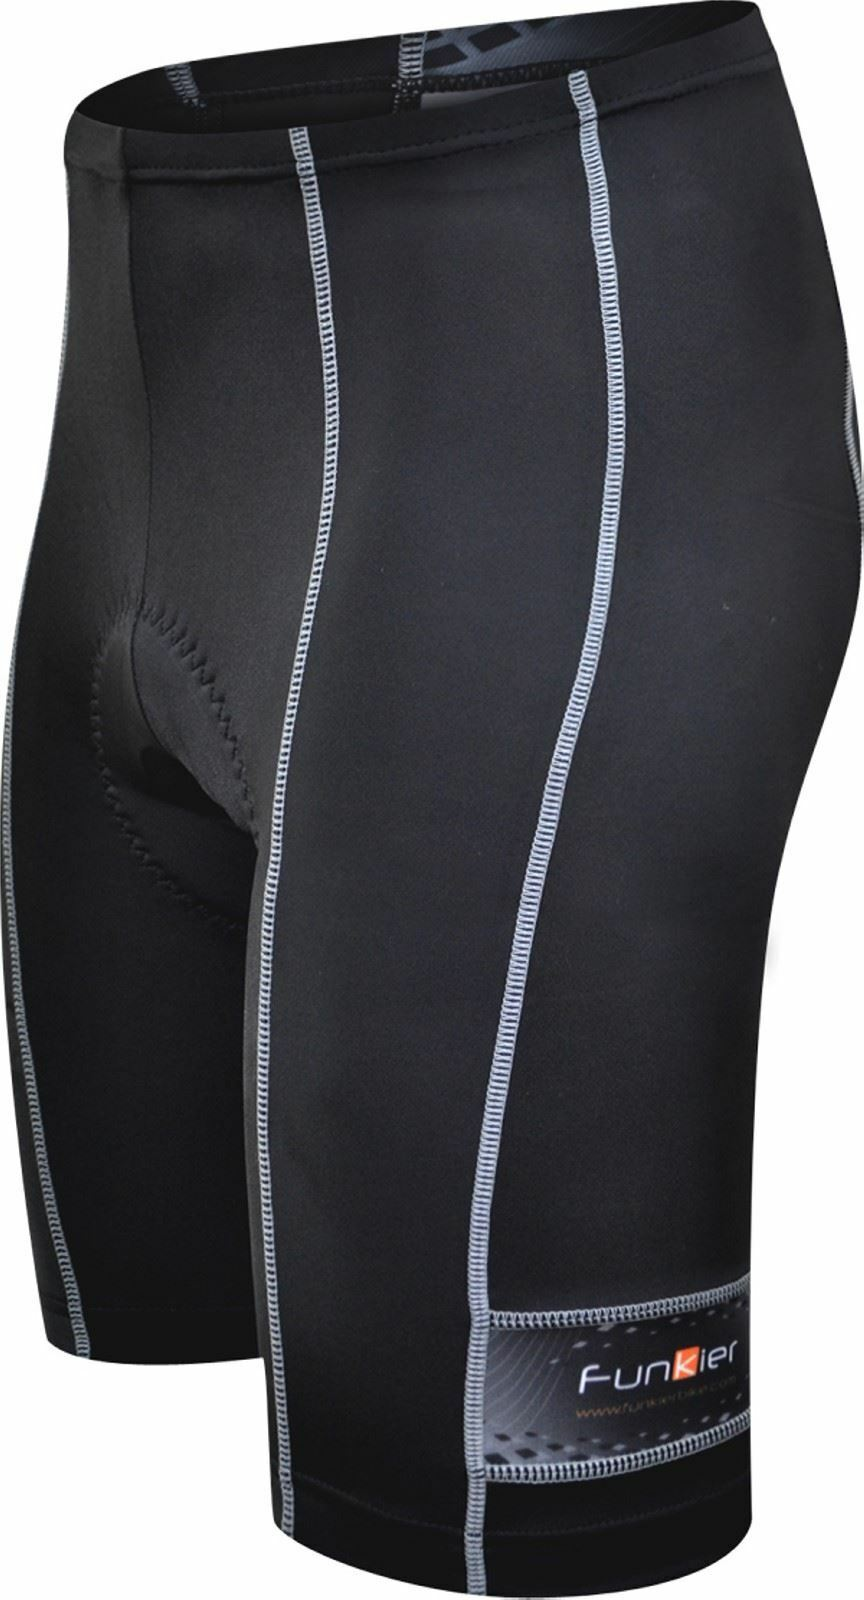 Funkier Force S-203-C1 - 10 Panel Aktiv Shorts aus Schwarz Gr. M